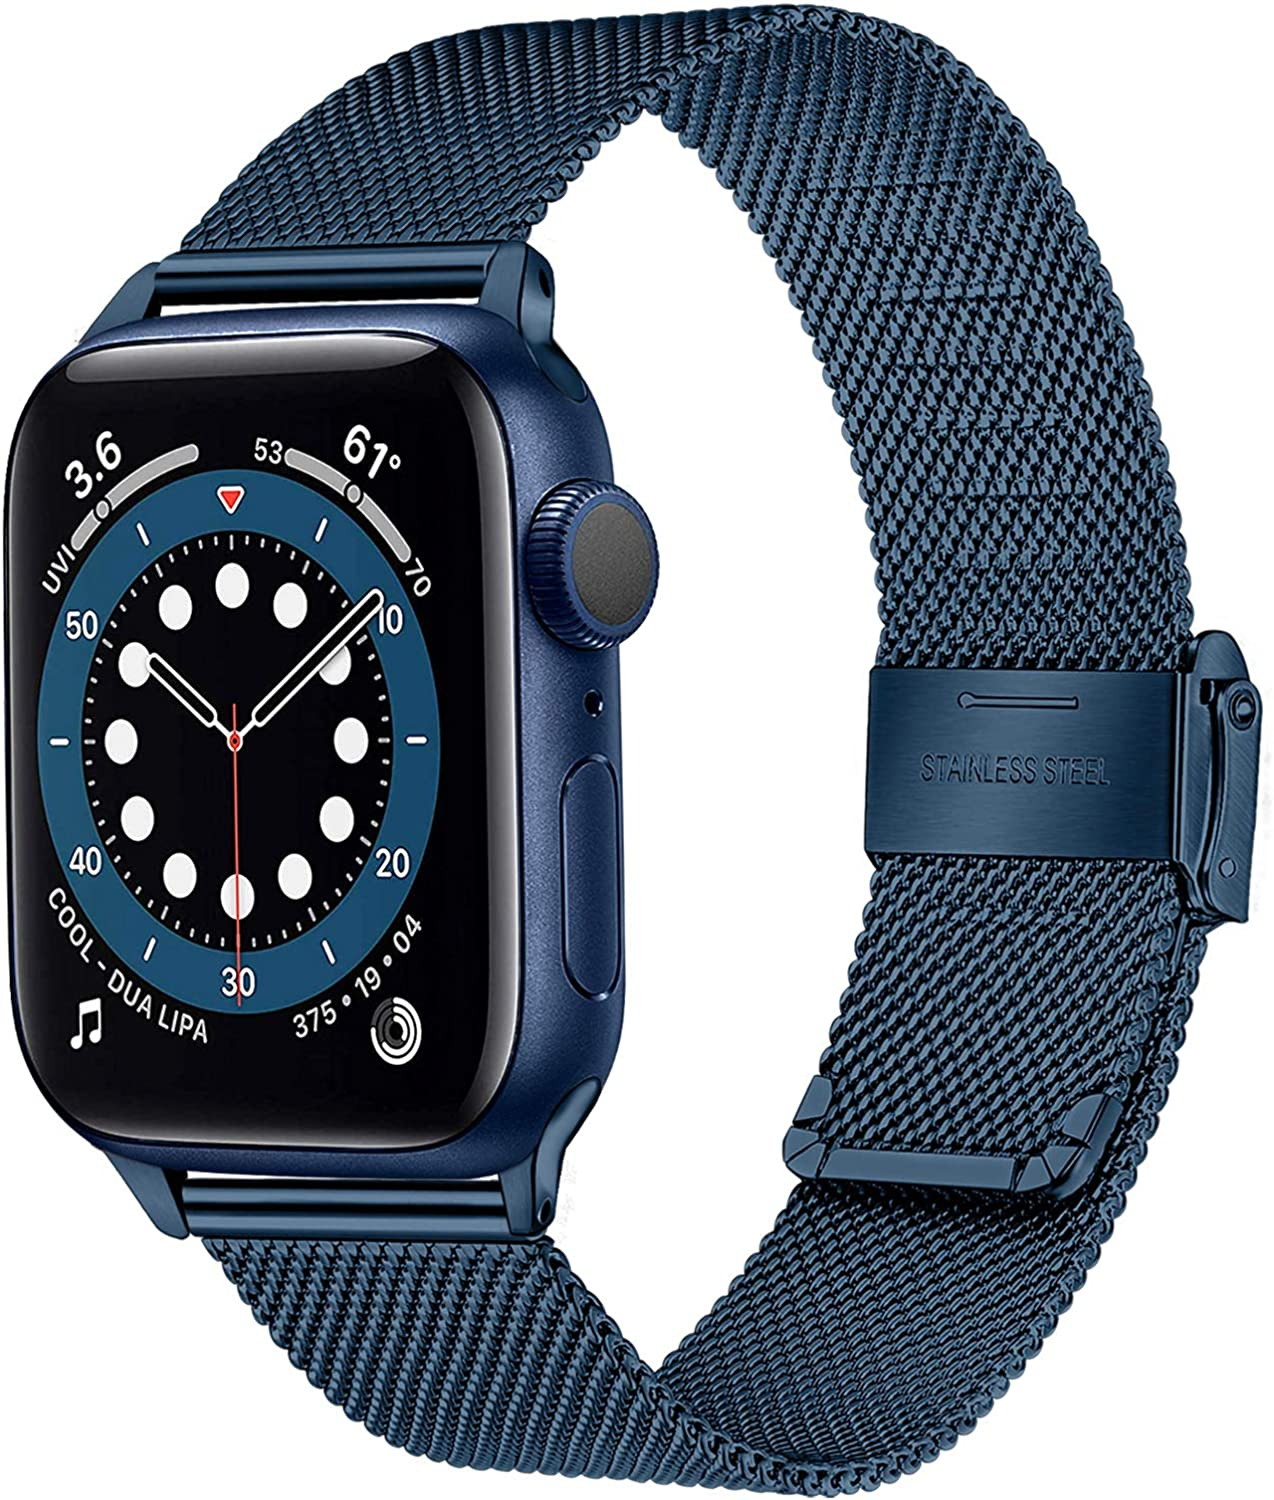 TRUMiRR Blue Band for Apple Watch Series 6 42mm 44mm Men Women, Mesh Woven Stainless Steel Watchband Replacement Strap Bracelet for iWatch Apple Watch SE Series 6 5 4 3 2 1 42mm 44mm